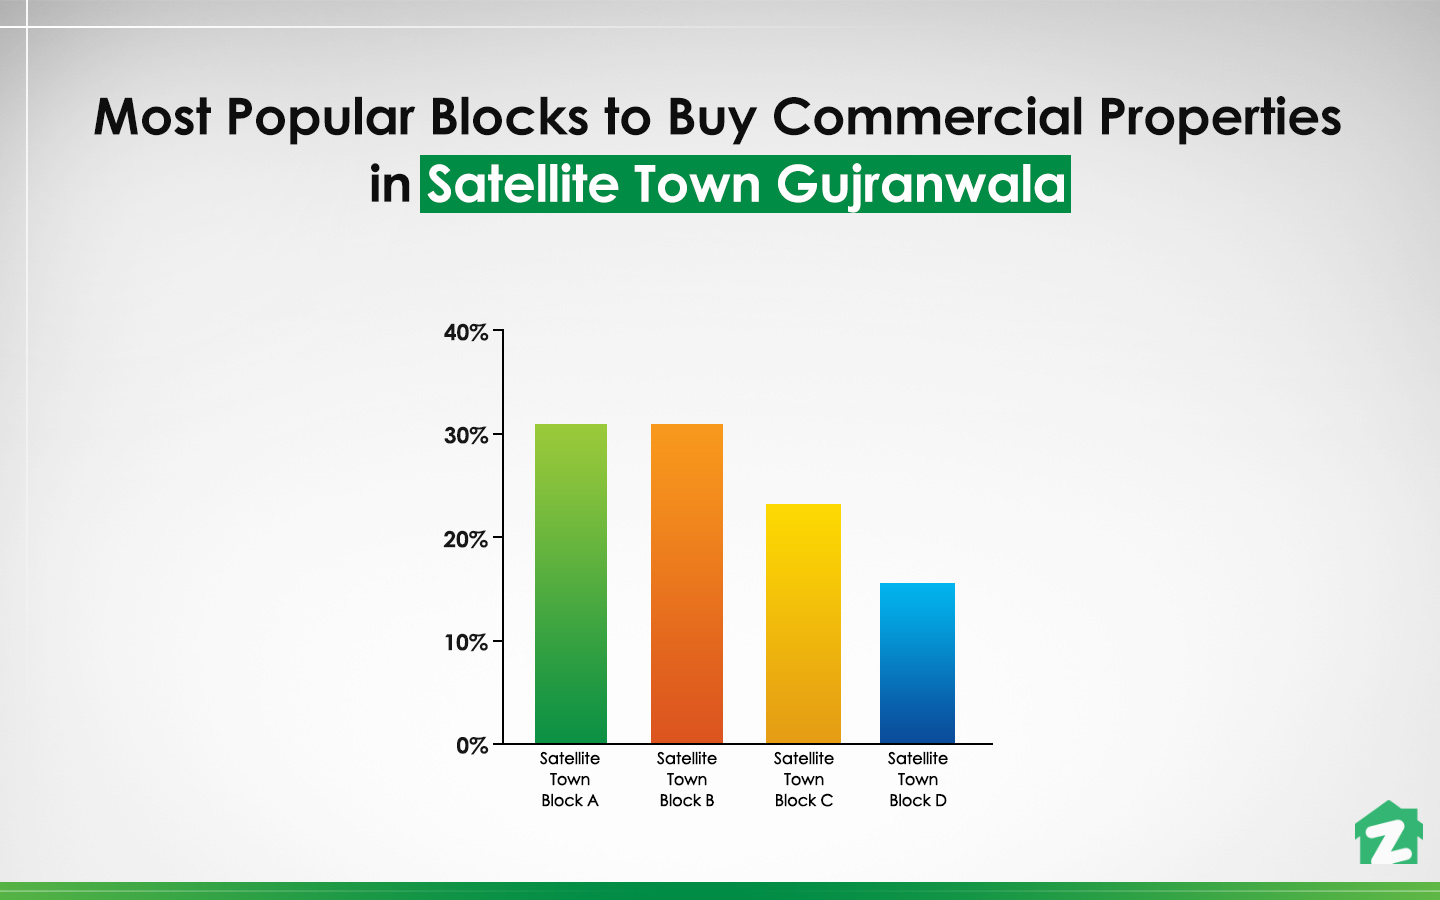 Satellite Town Block-A is the most famous block for buying commercial properties